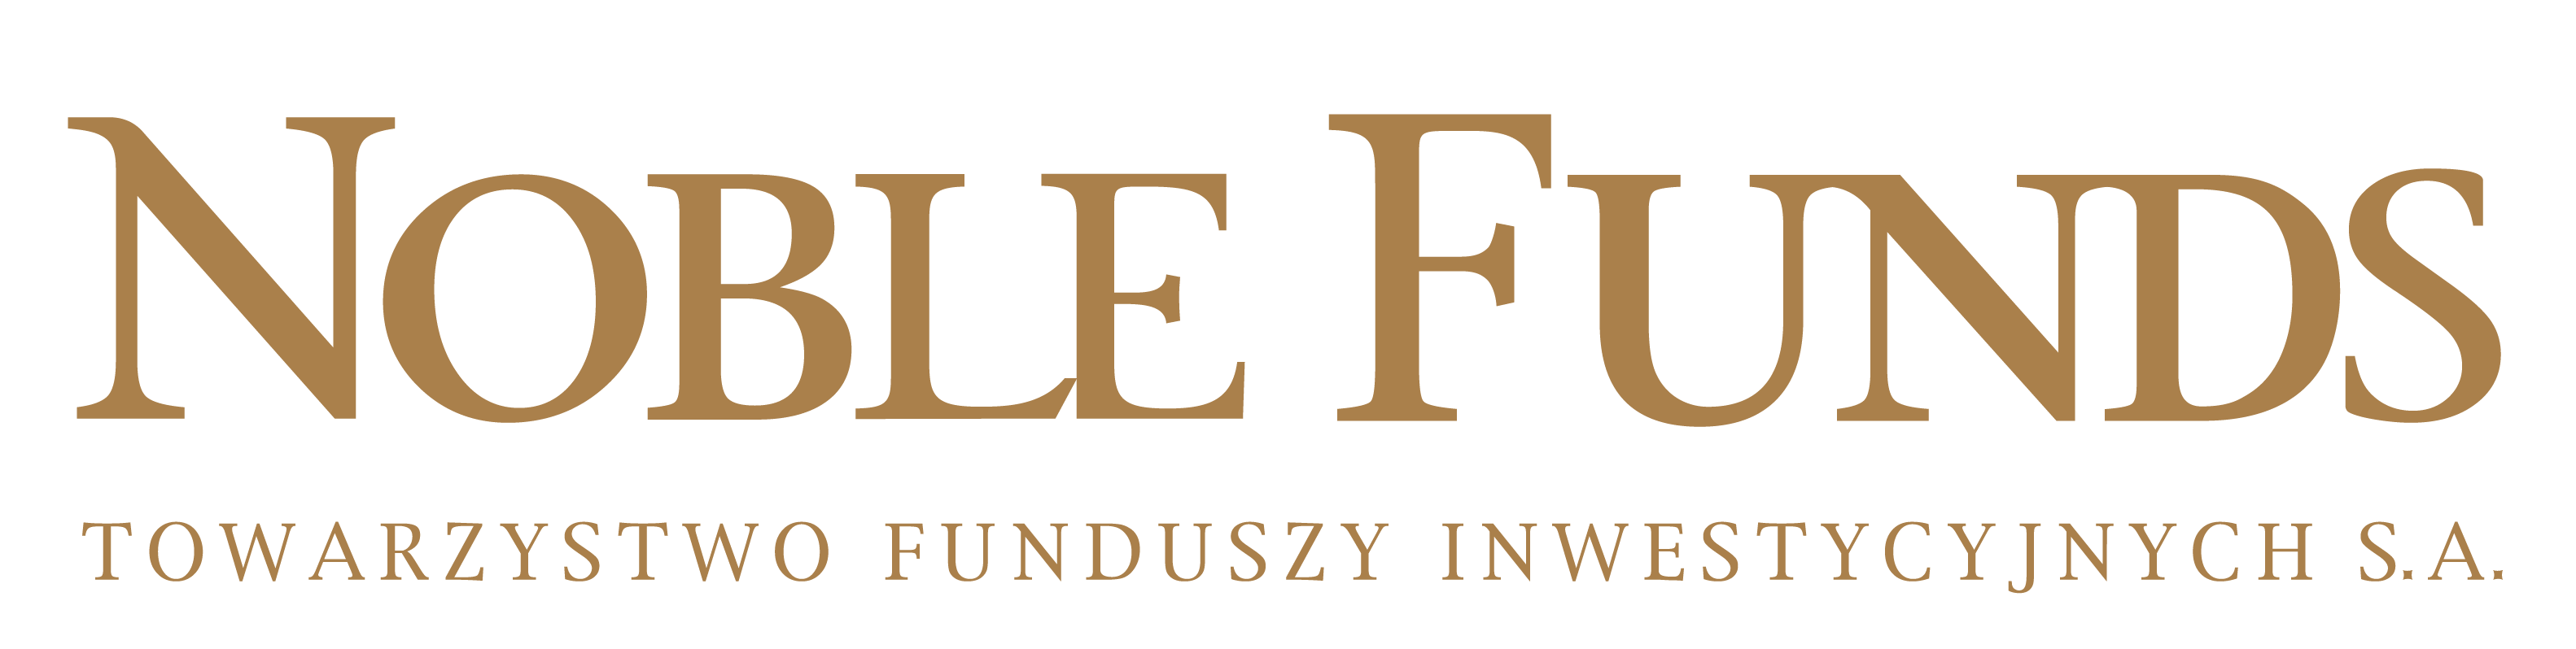 Noble Funds TFI S.A.